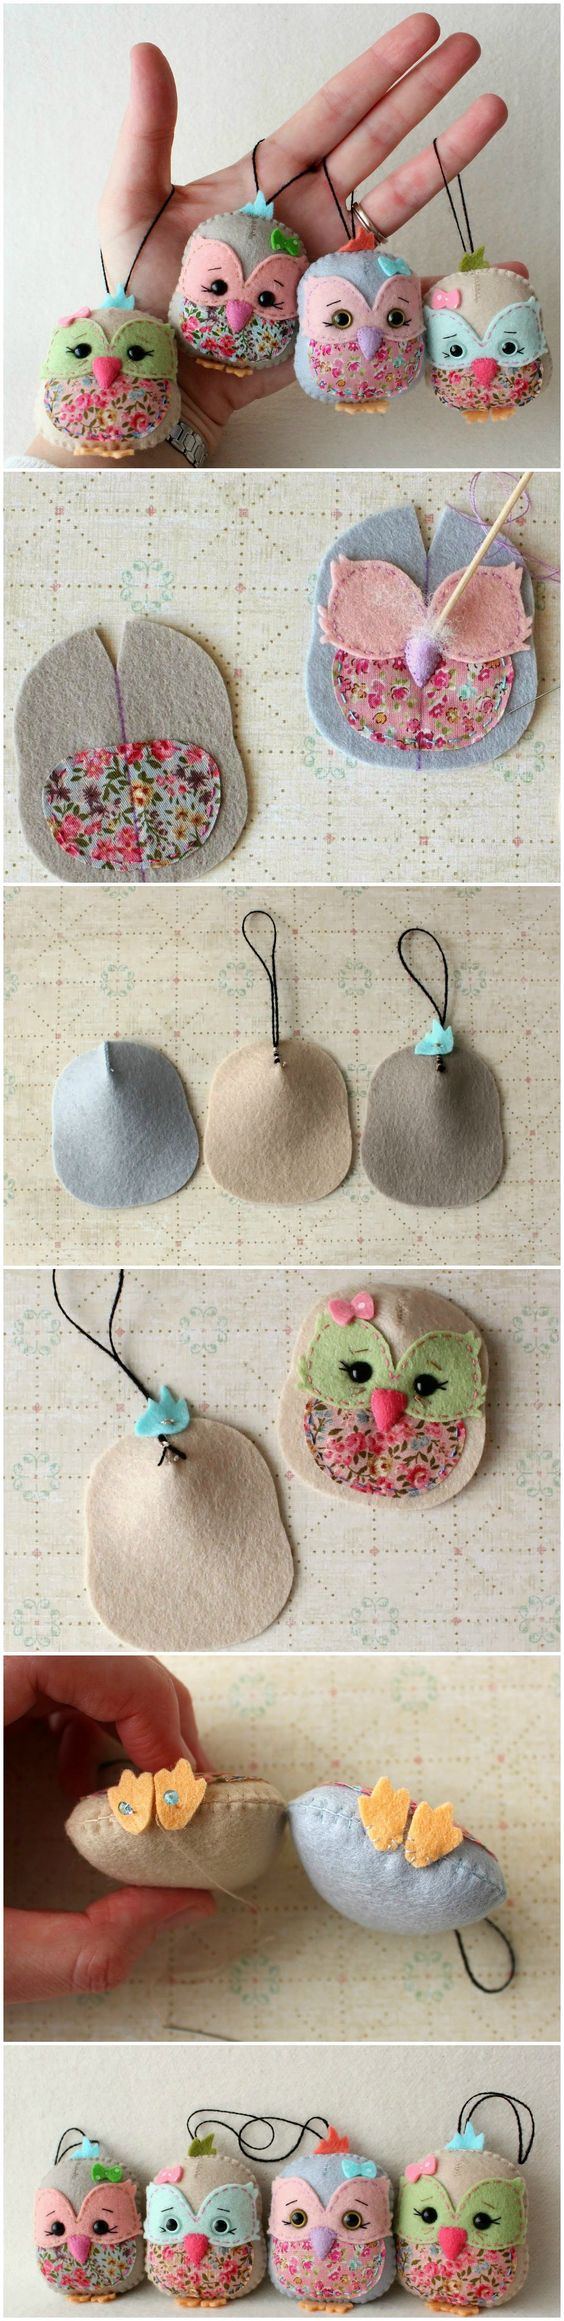 Gingermelon Dolls: Free Pattern – Little Lark Lavender // For more family resources visit www.ifamilykc.com! :)